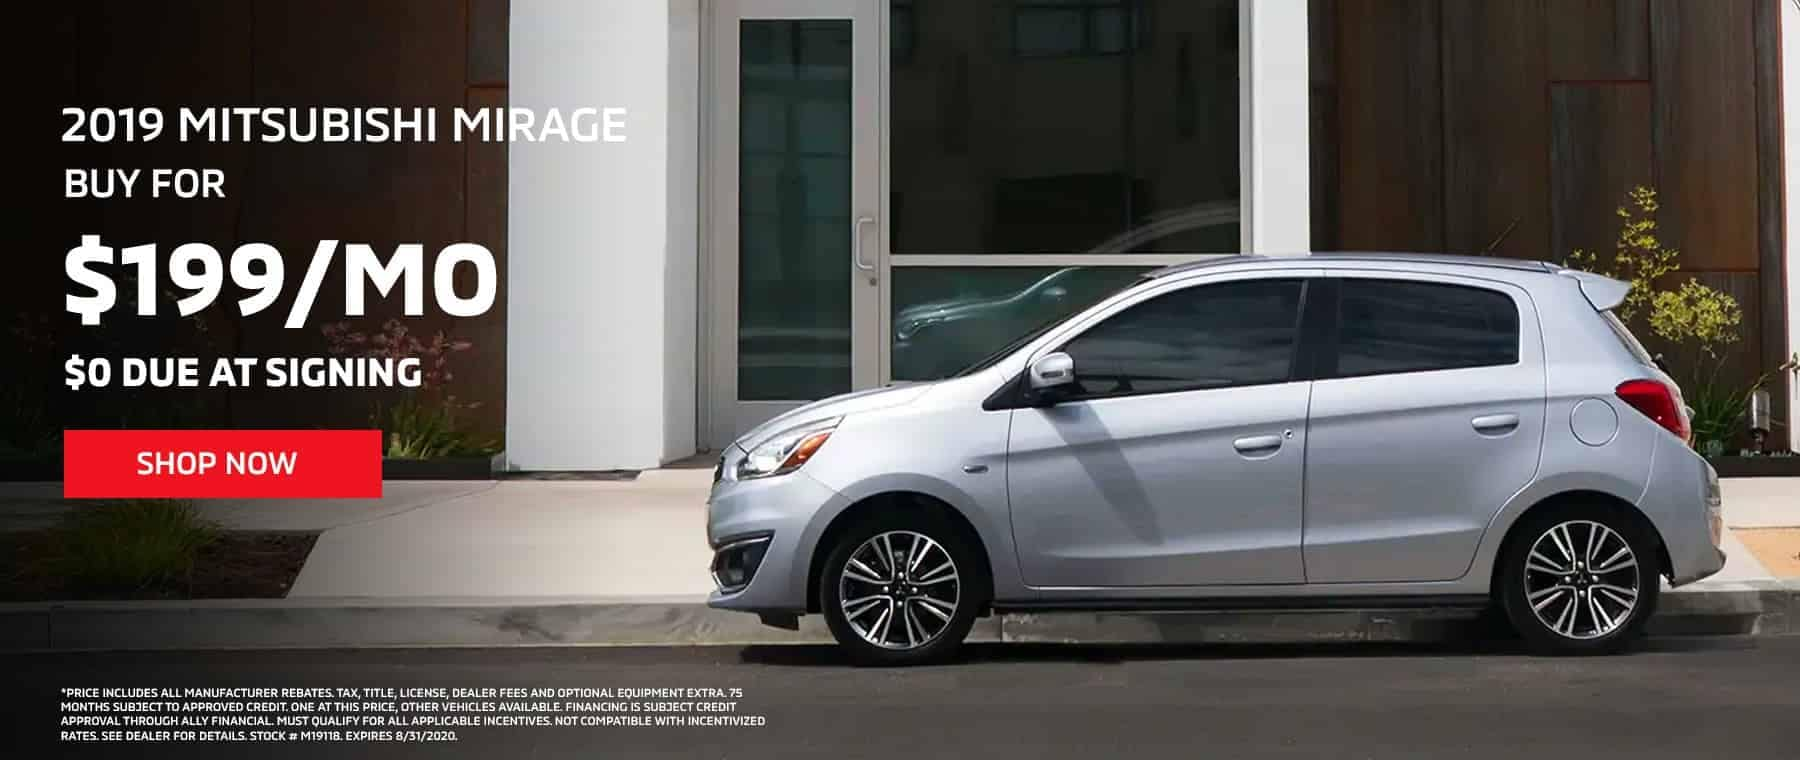 2019 MIRAGE – AS LOW AS $199 PER MONTH